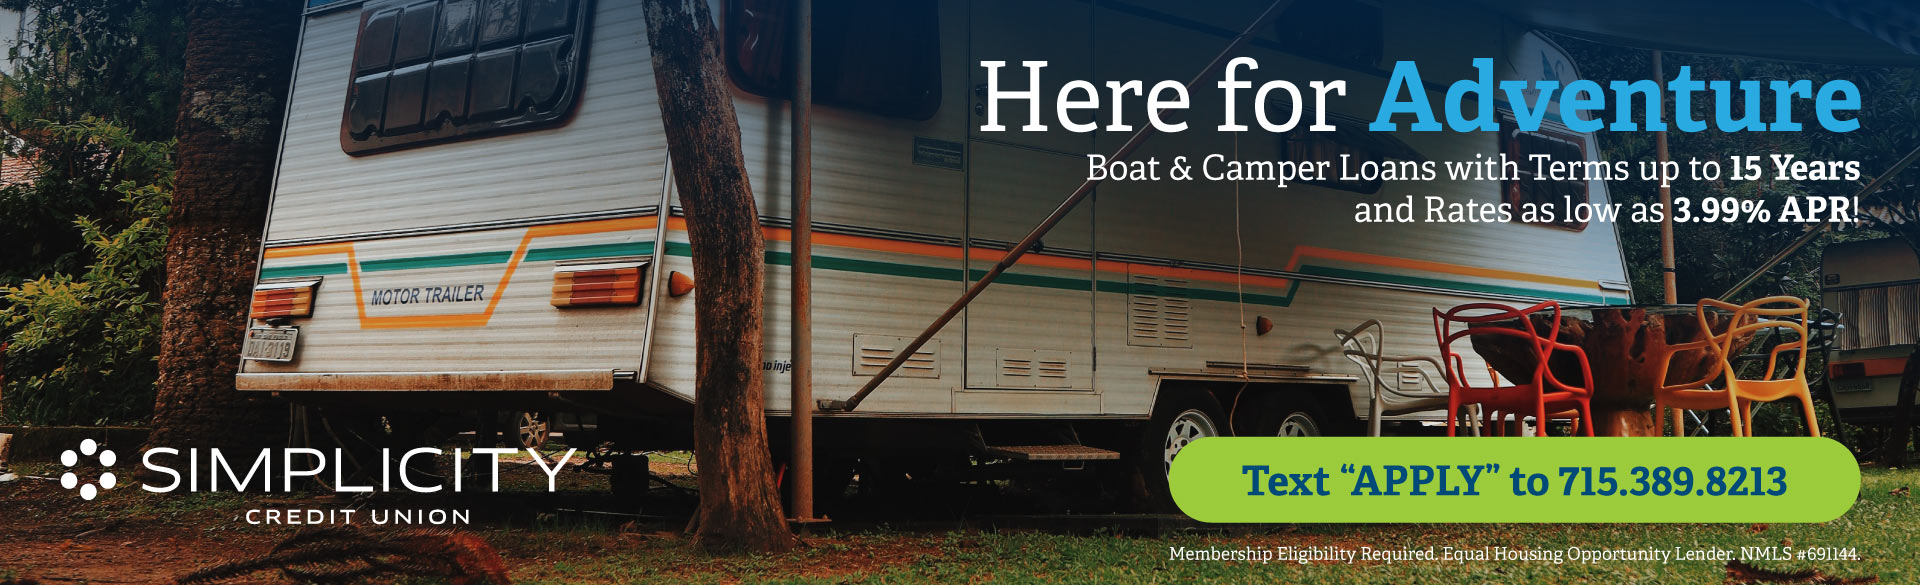 Boat & Camper Loans with terms up to 15 years and rates as low as 3.99% APR!